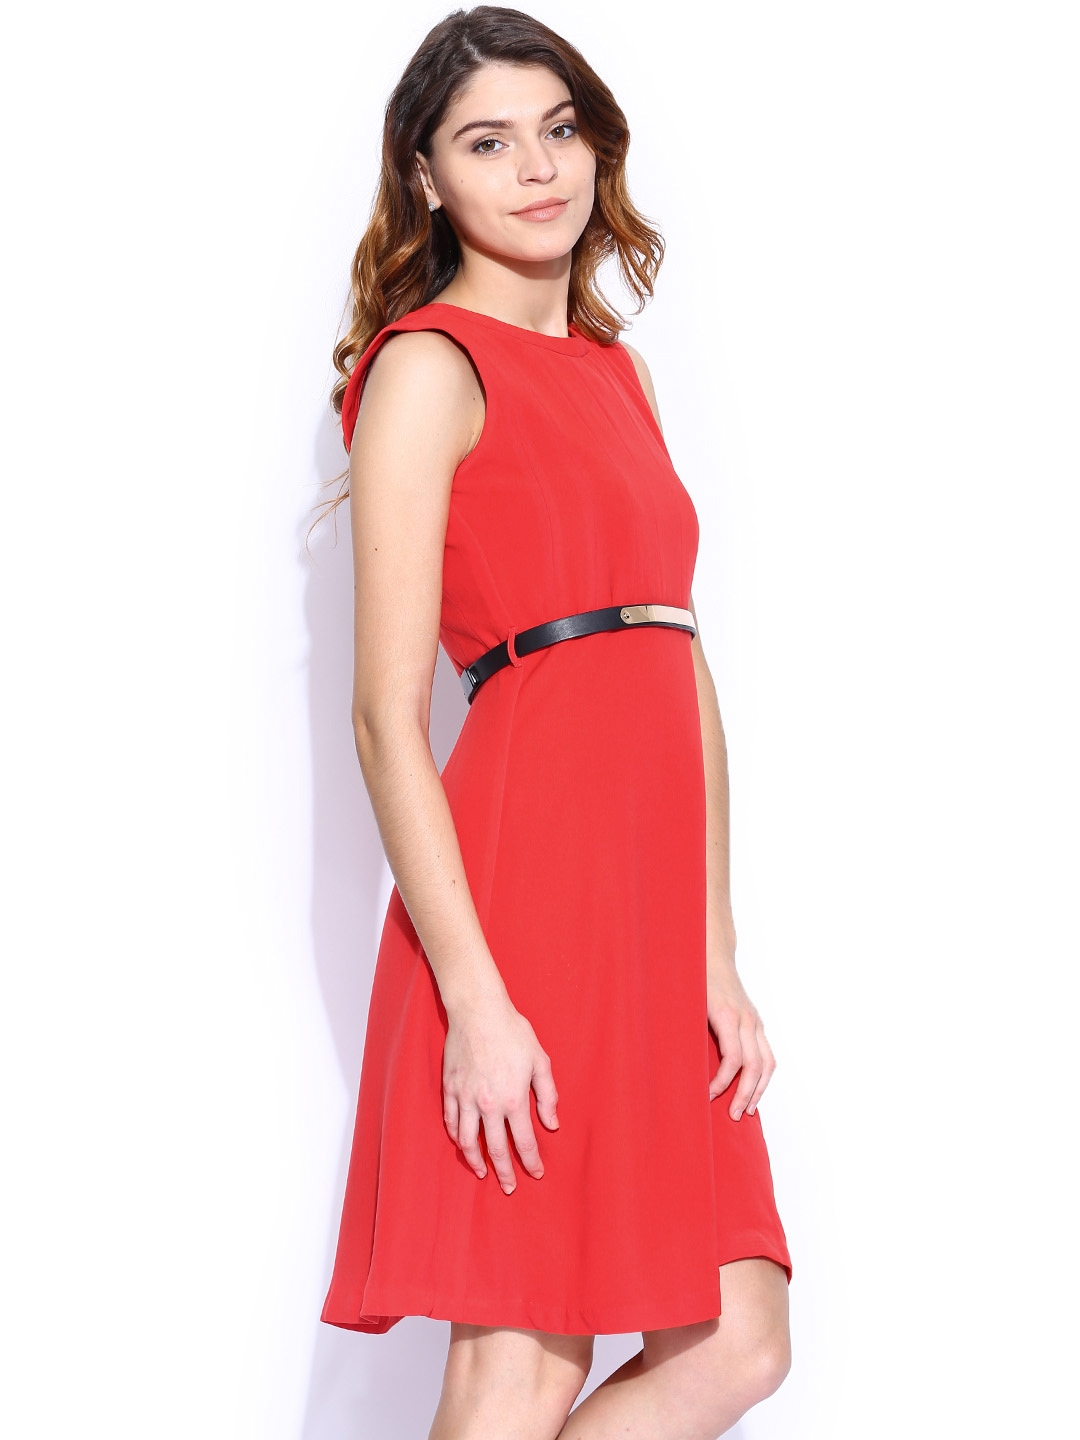 Book of van heusen women dress in canada by william Madura fashion and lifestyle wiki